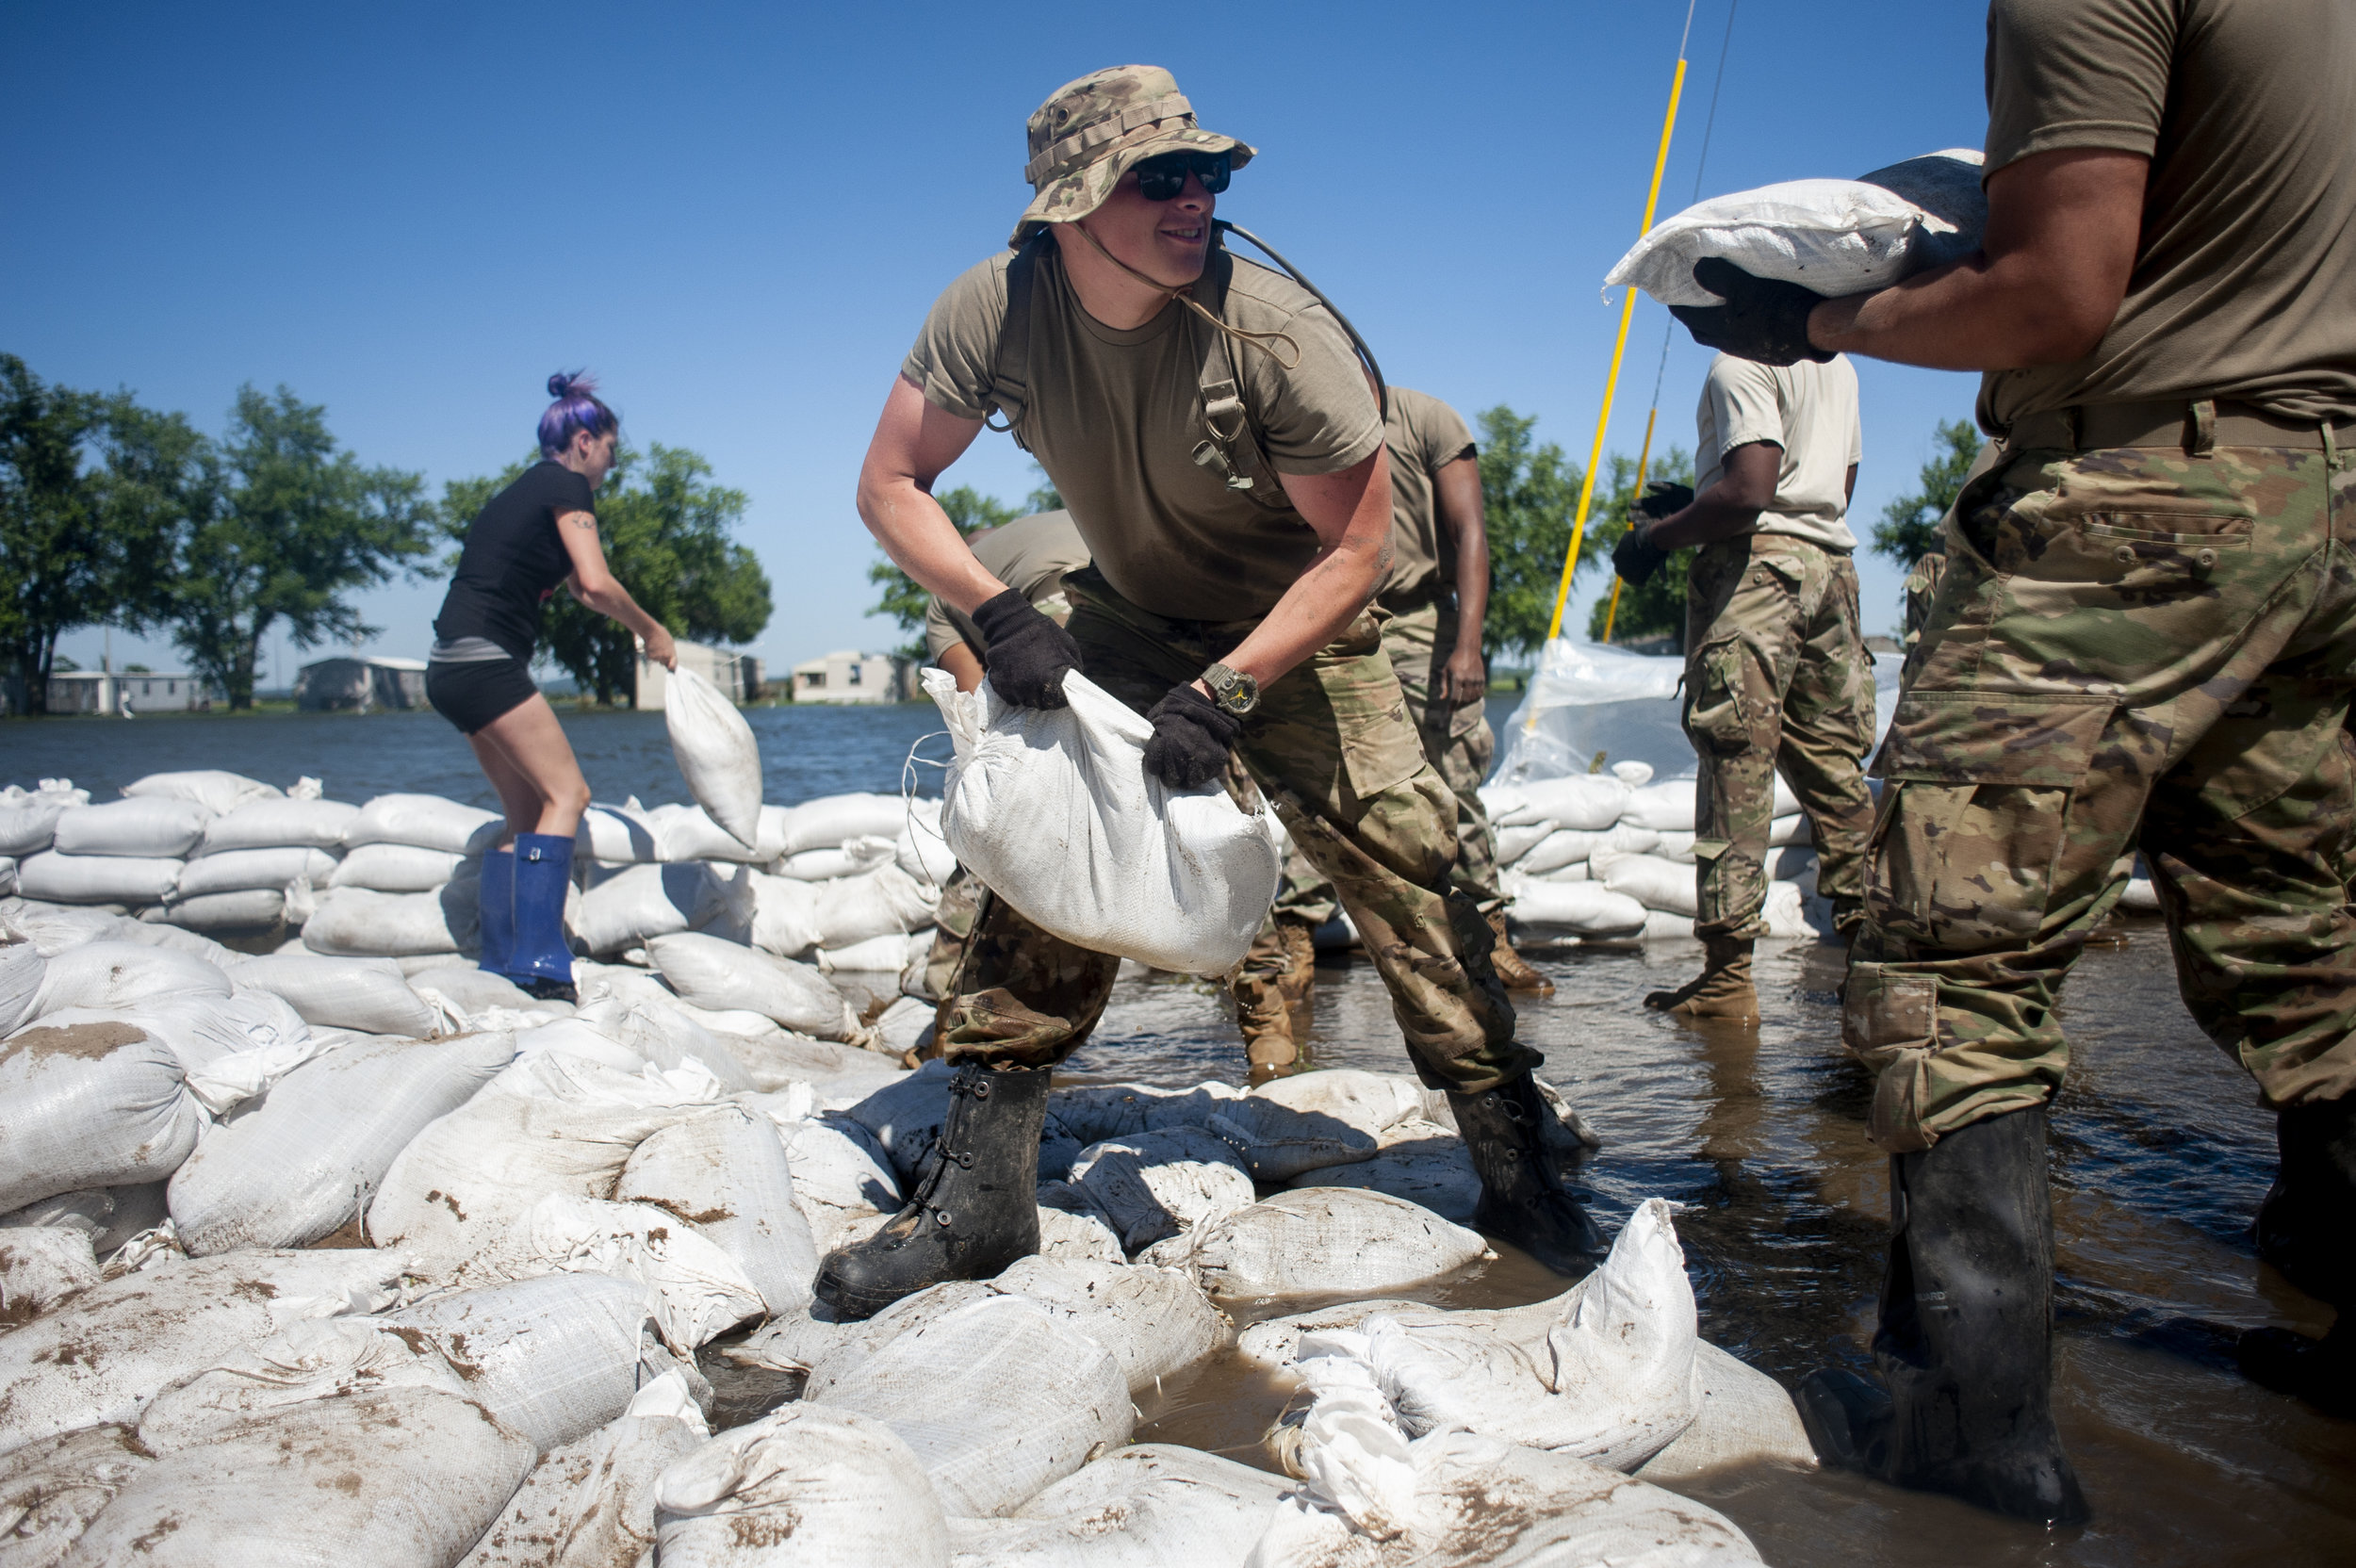 Illinois National Guard member Michael Sheppard helps other Guard members build up existing sandbag barriers to hold back floodwaters Monday, June 10, 2019, along Brookwood Drive in East Cape Girardeau, Illinois. Jacob Wiegand | Southeast Missourian